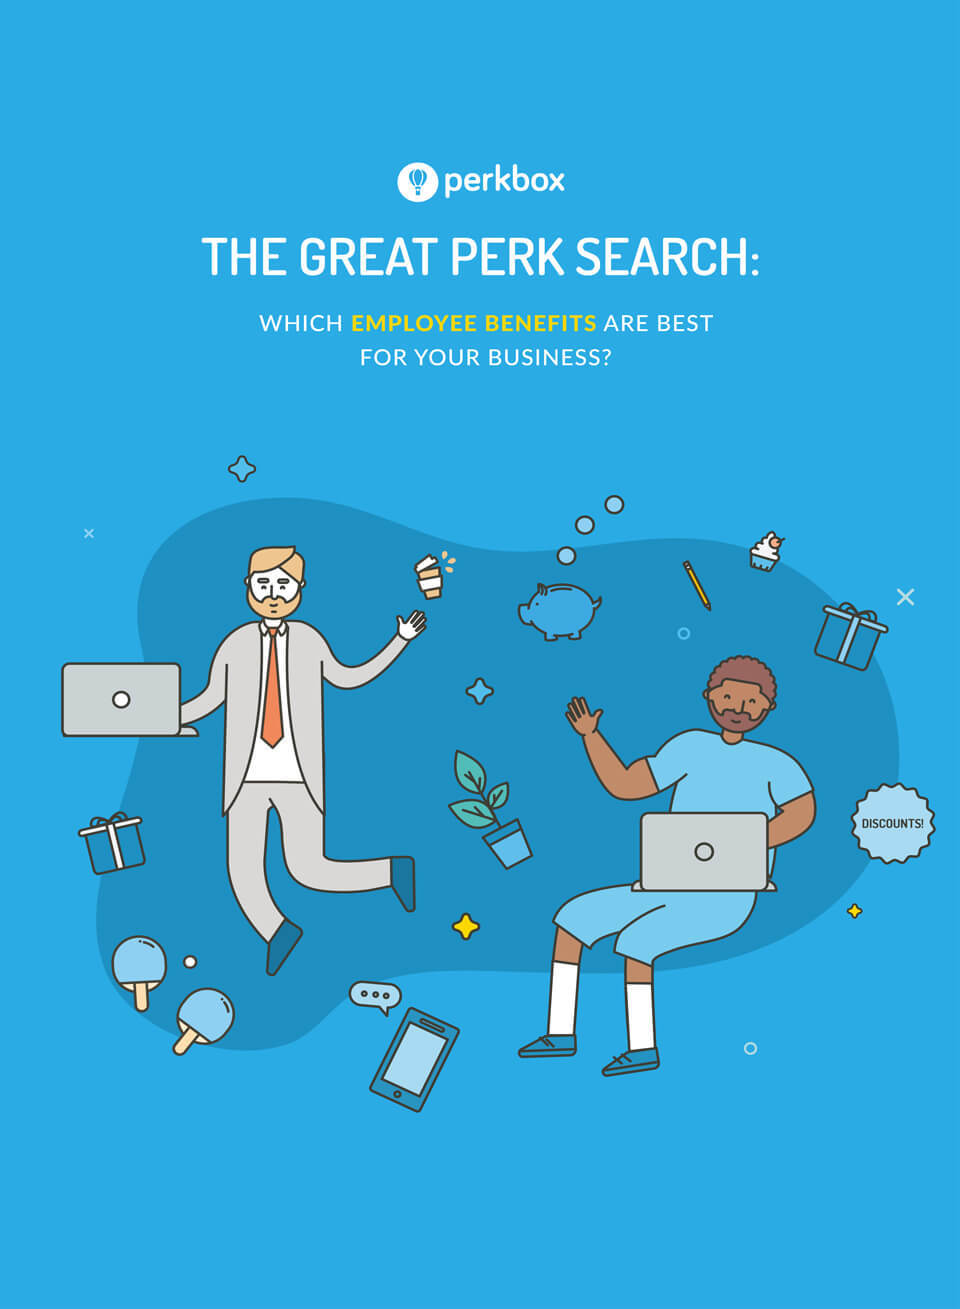 The Great Perk Search